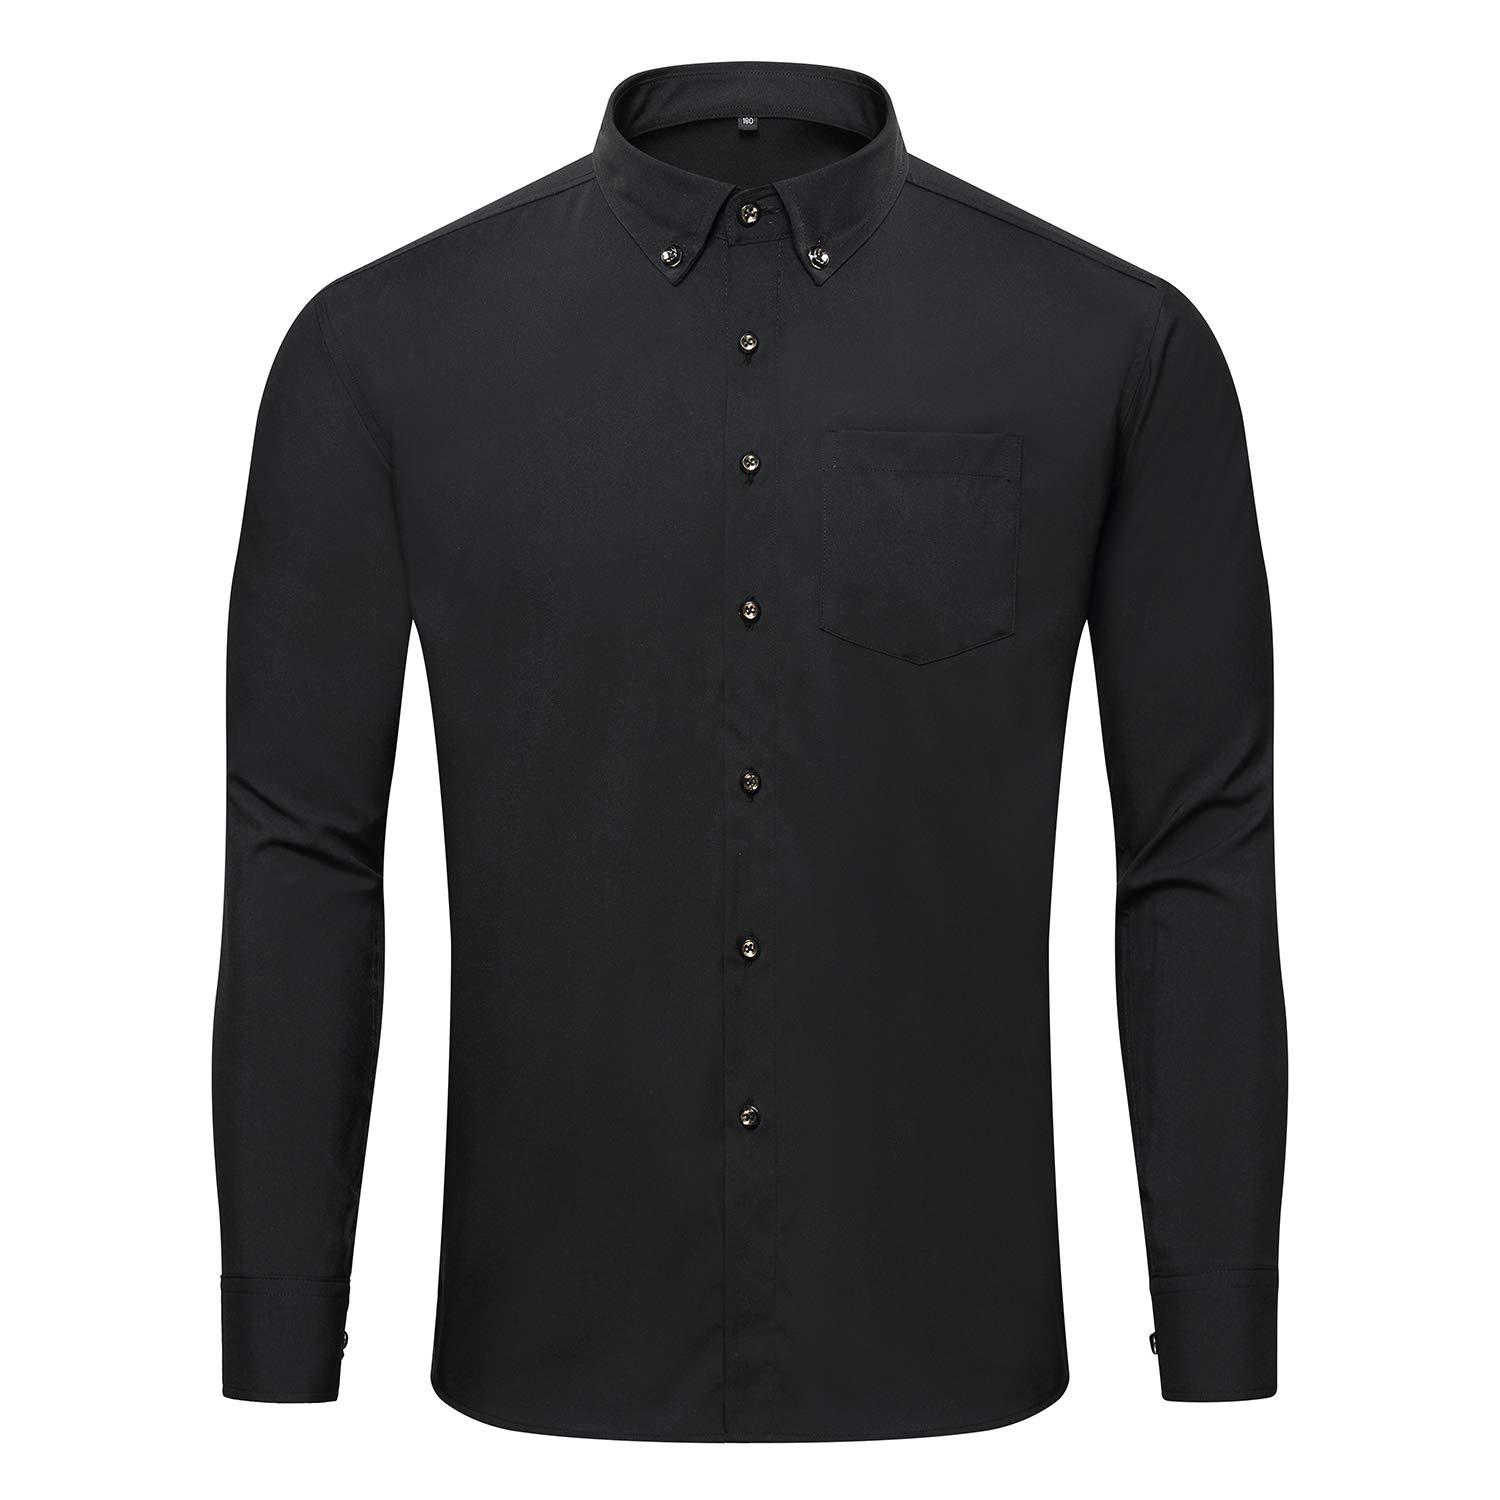 Jeopace Big and Tall Dress Shirts for Men Long Sleeve Button Down Black